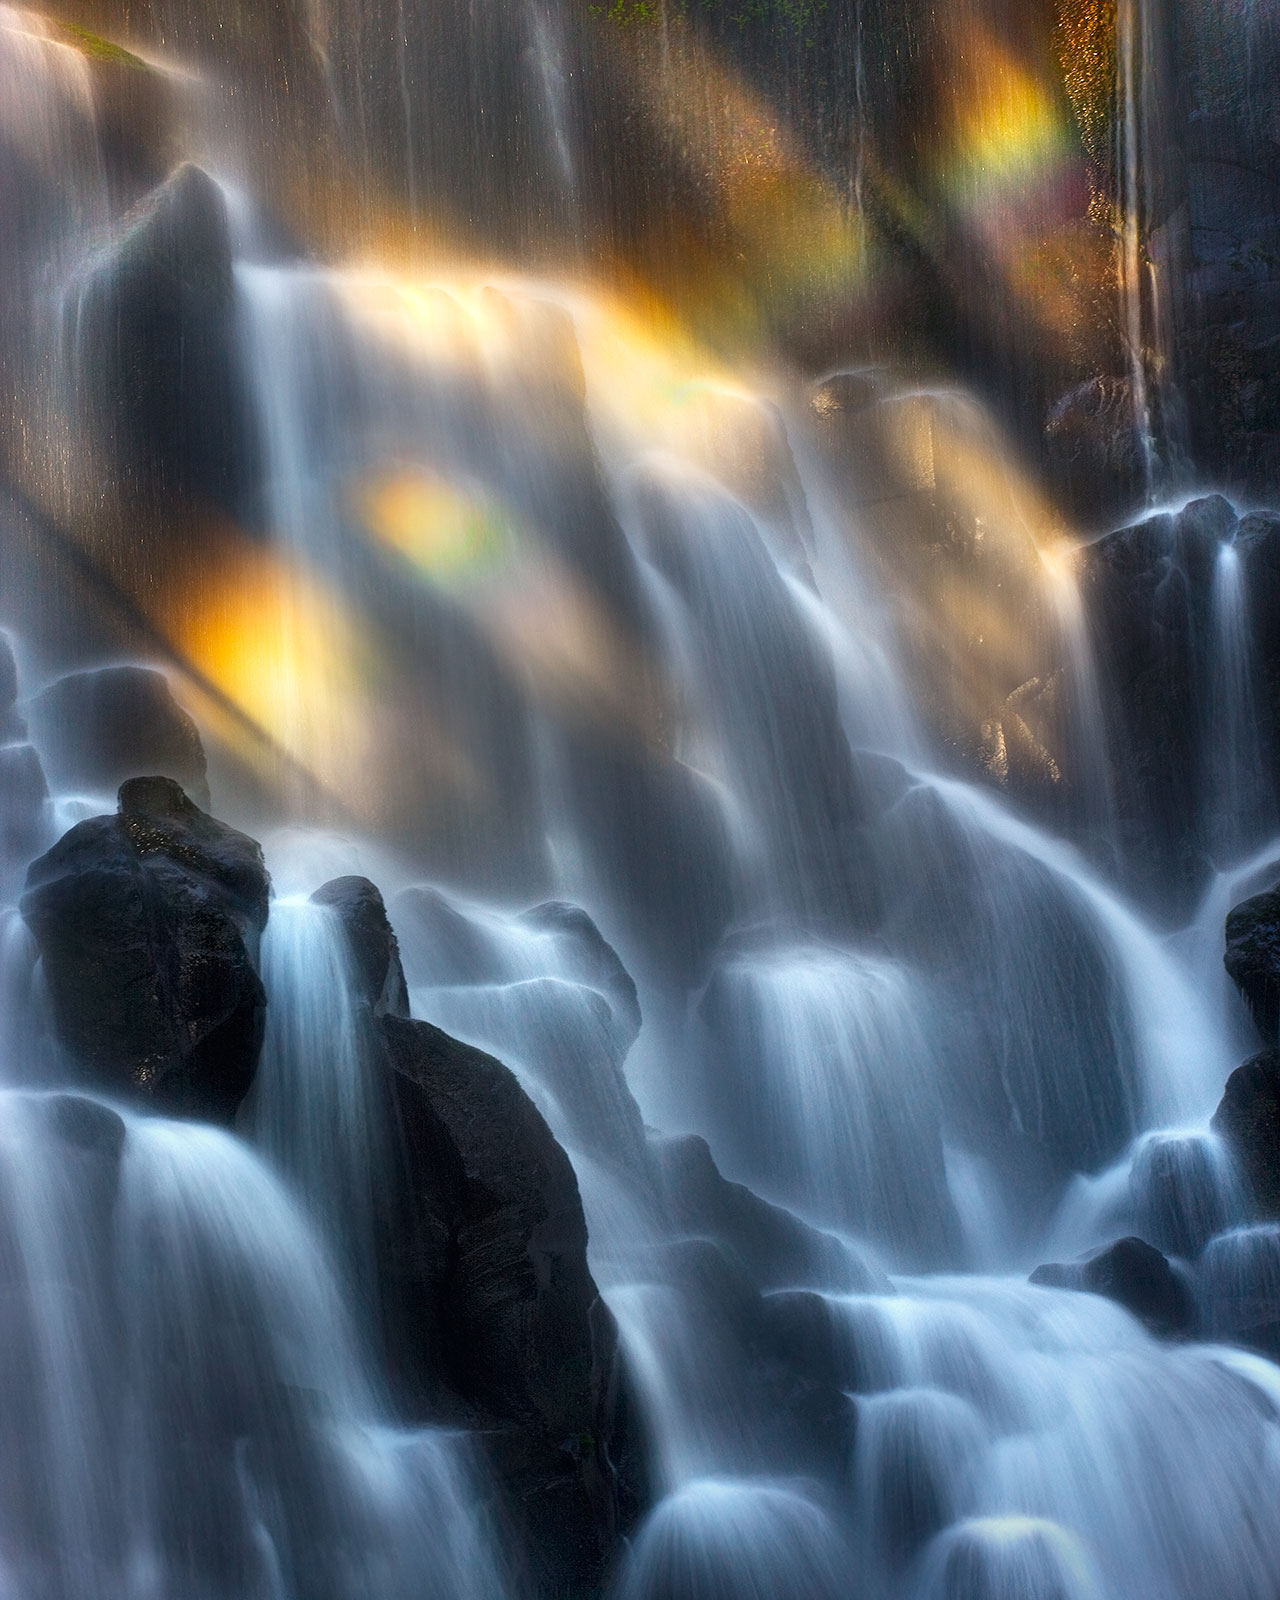 The last light of sunset creating rainbows across this beautifully terraced waterfall in the Mount Hood wilderness, Oregon.